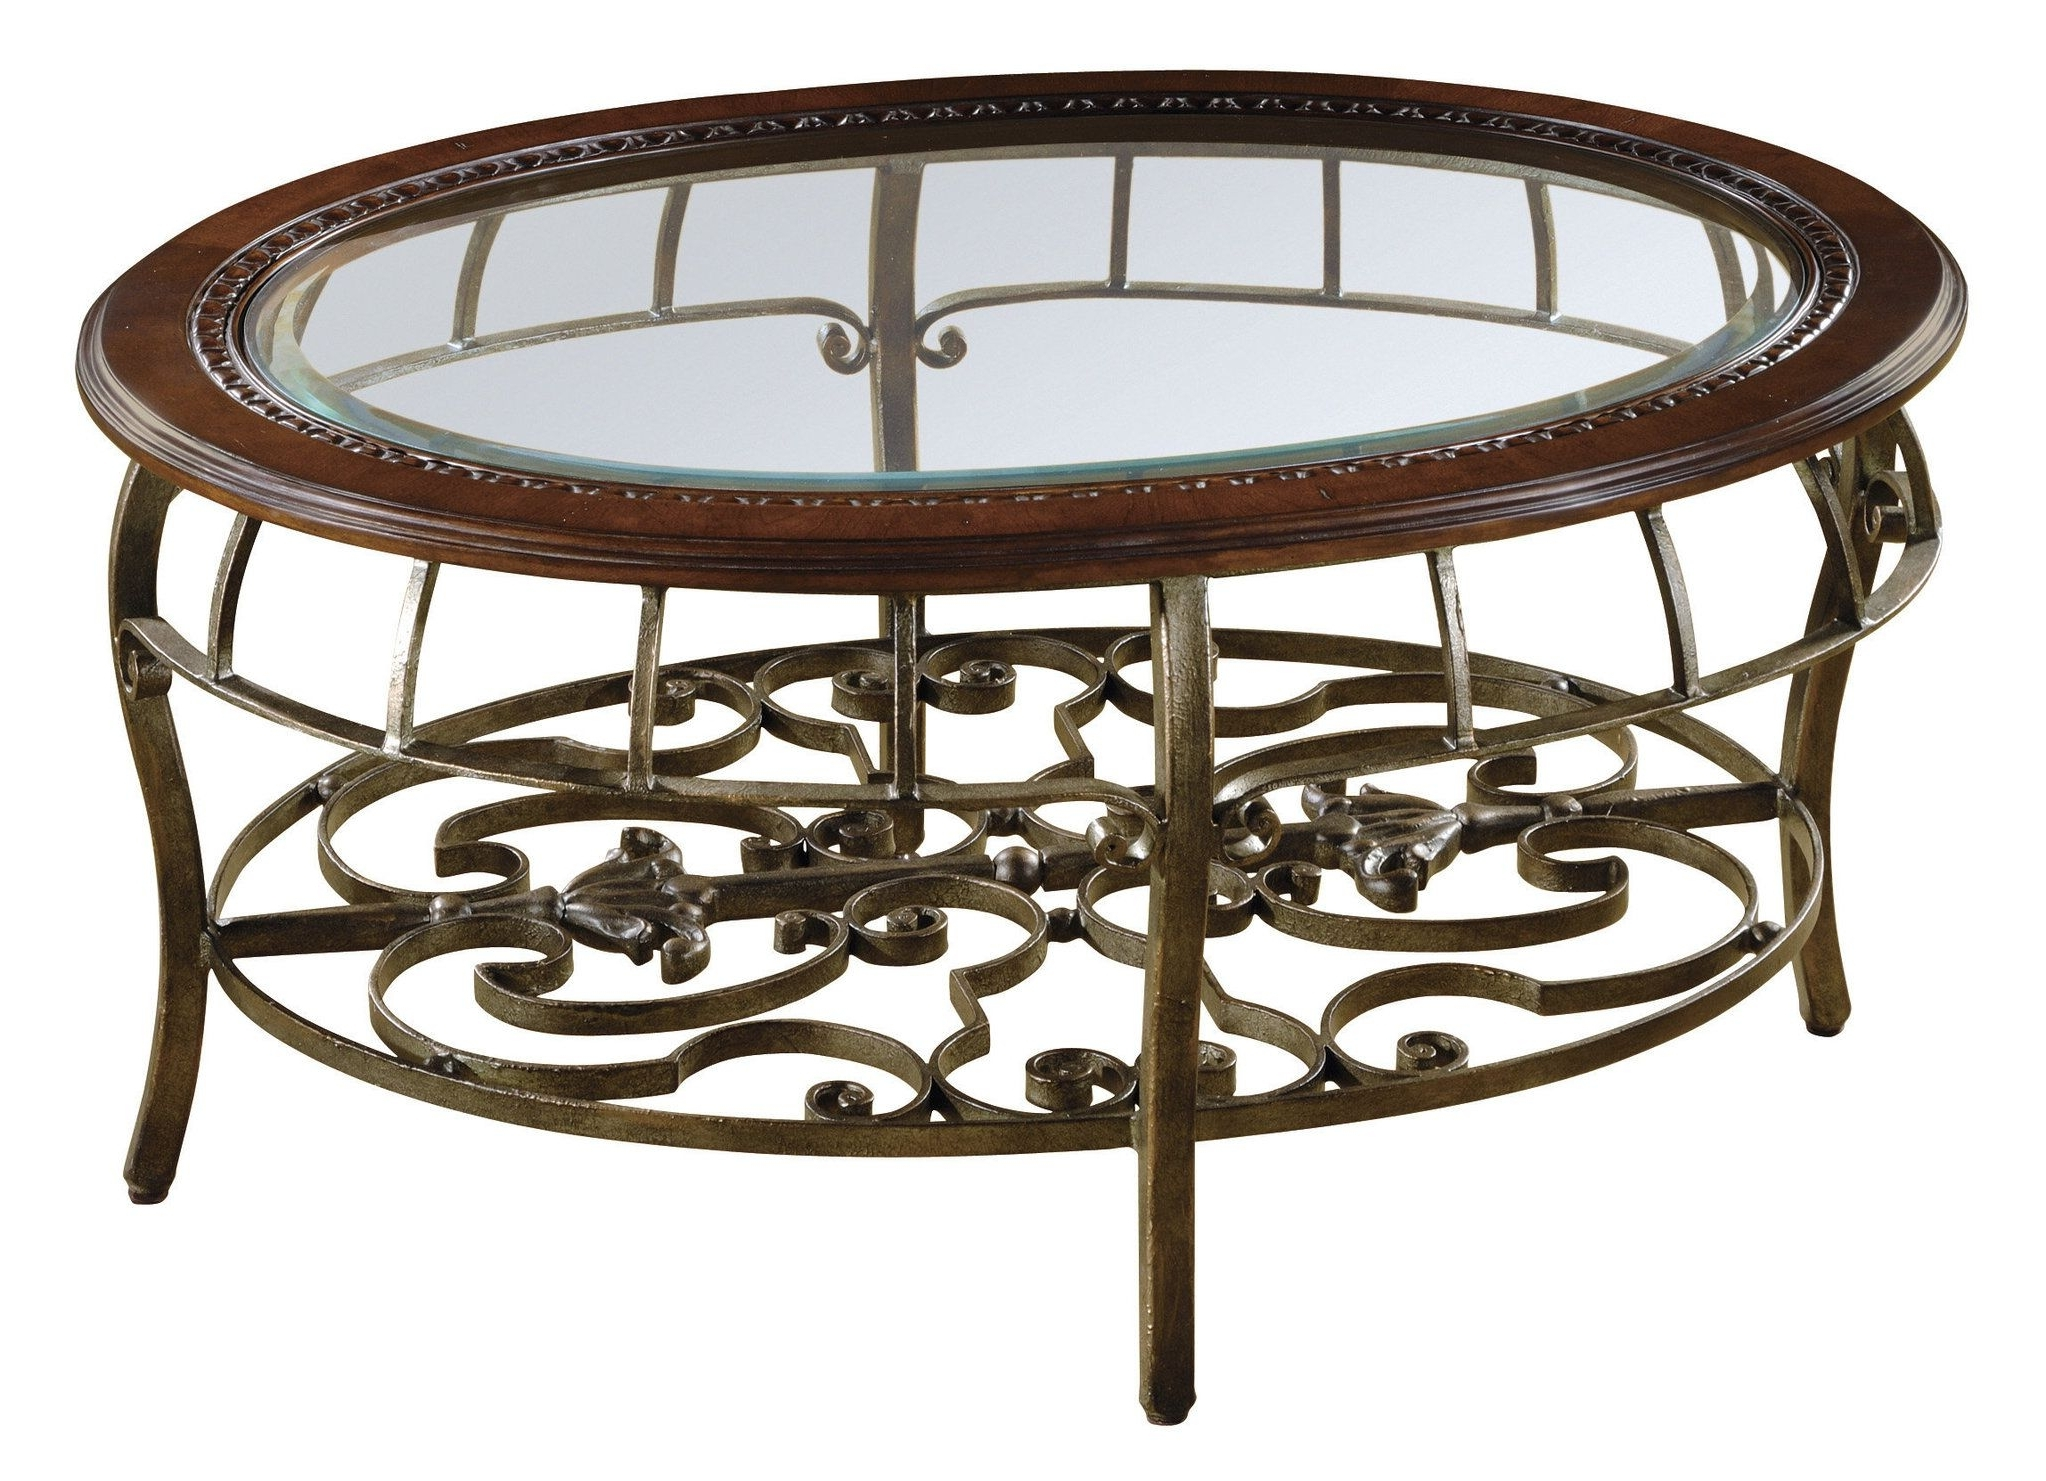 Round Beveled Glass Table – Traditional Coffee Table With Metal Base Intended For Latest Traditional Coffee Tables (View 17 of 20)